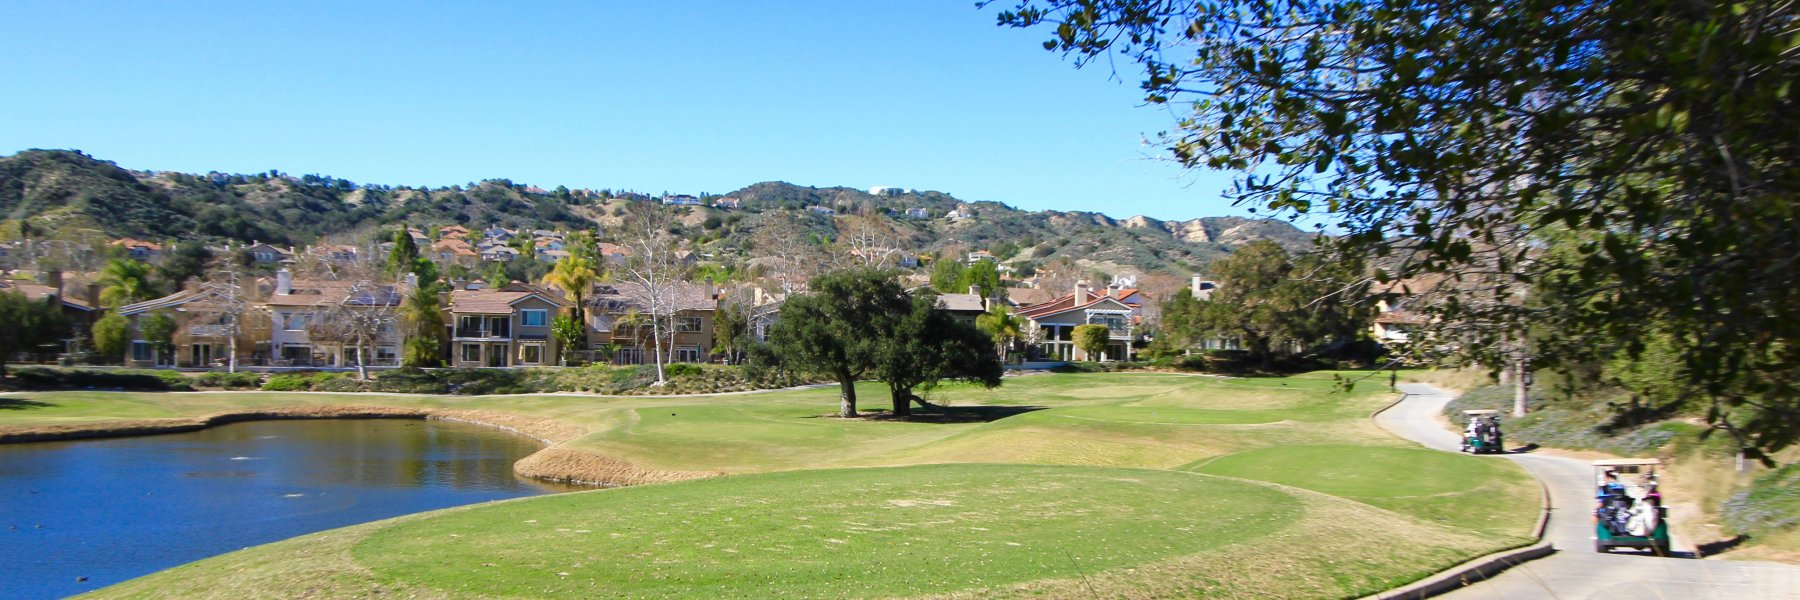 Arbours is a community of homes in Coto de Caza, California